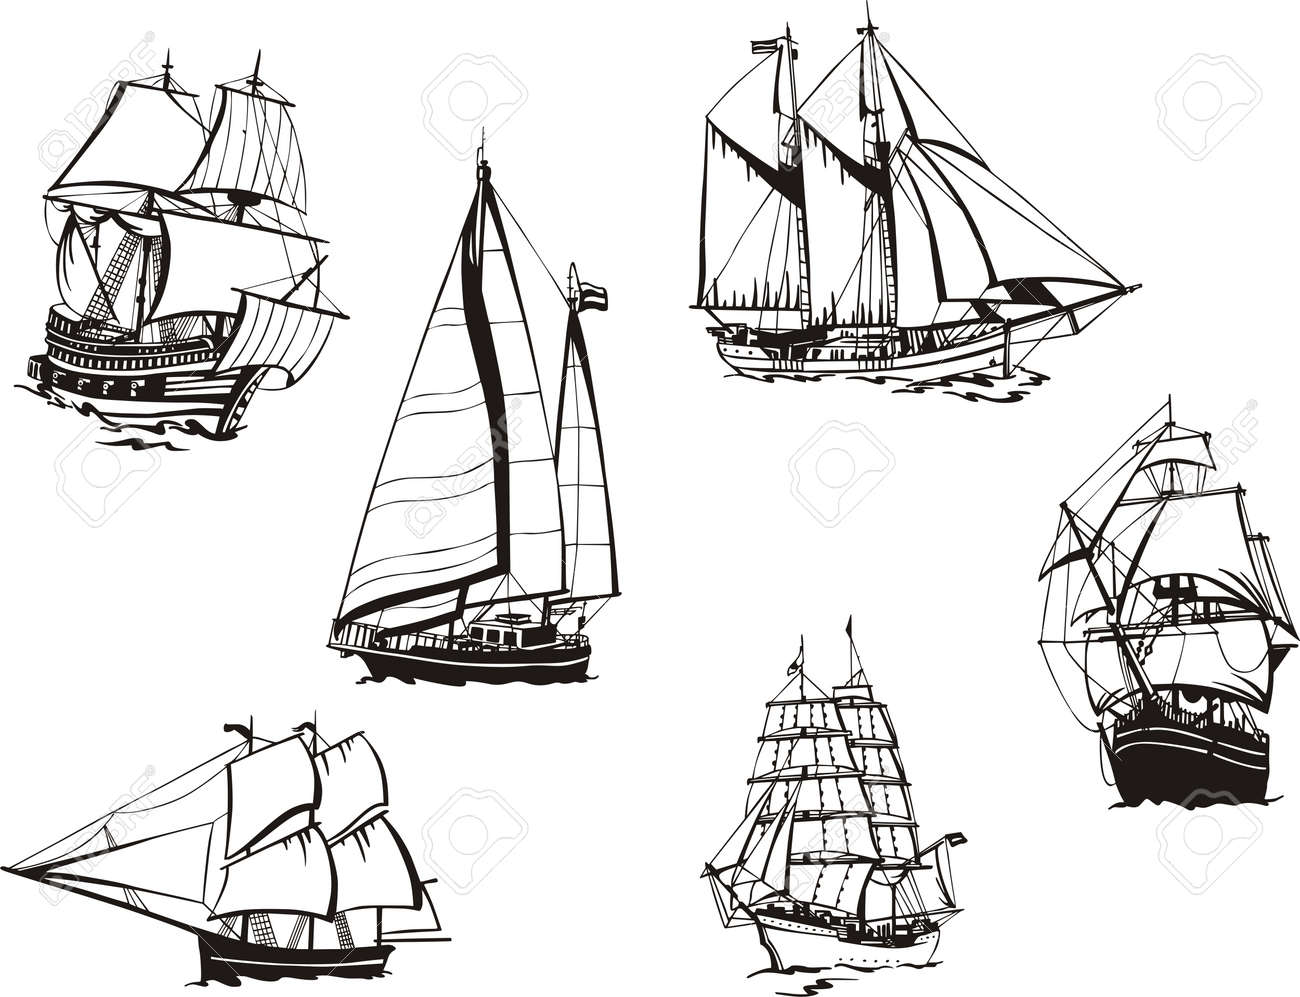 black and white sketches of sailing ships royalty free cliparts